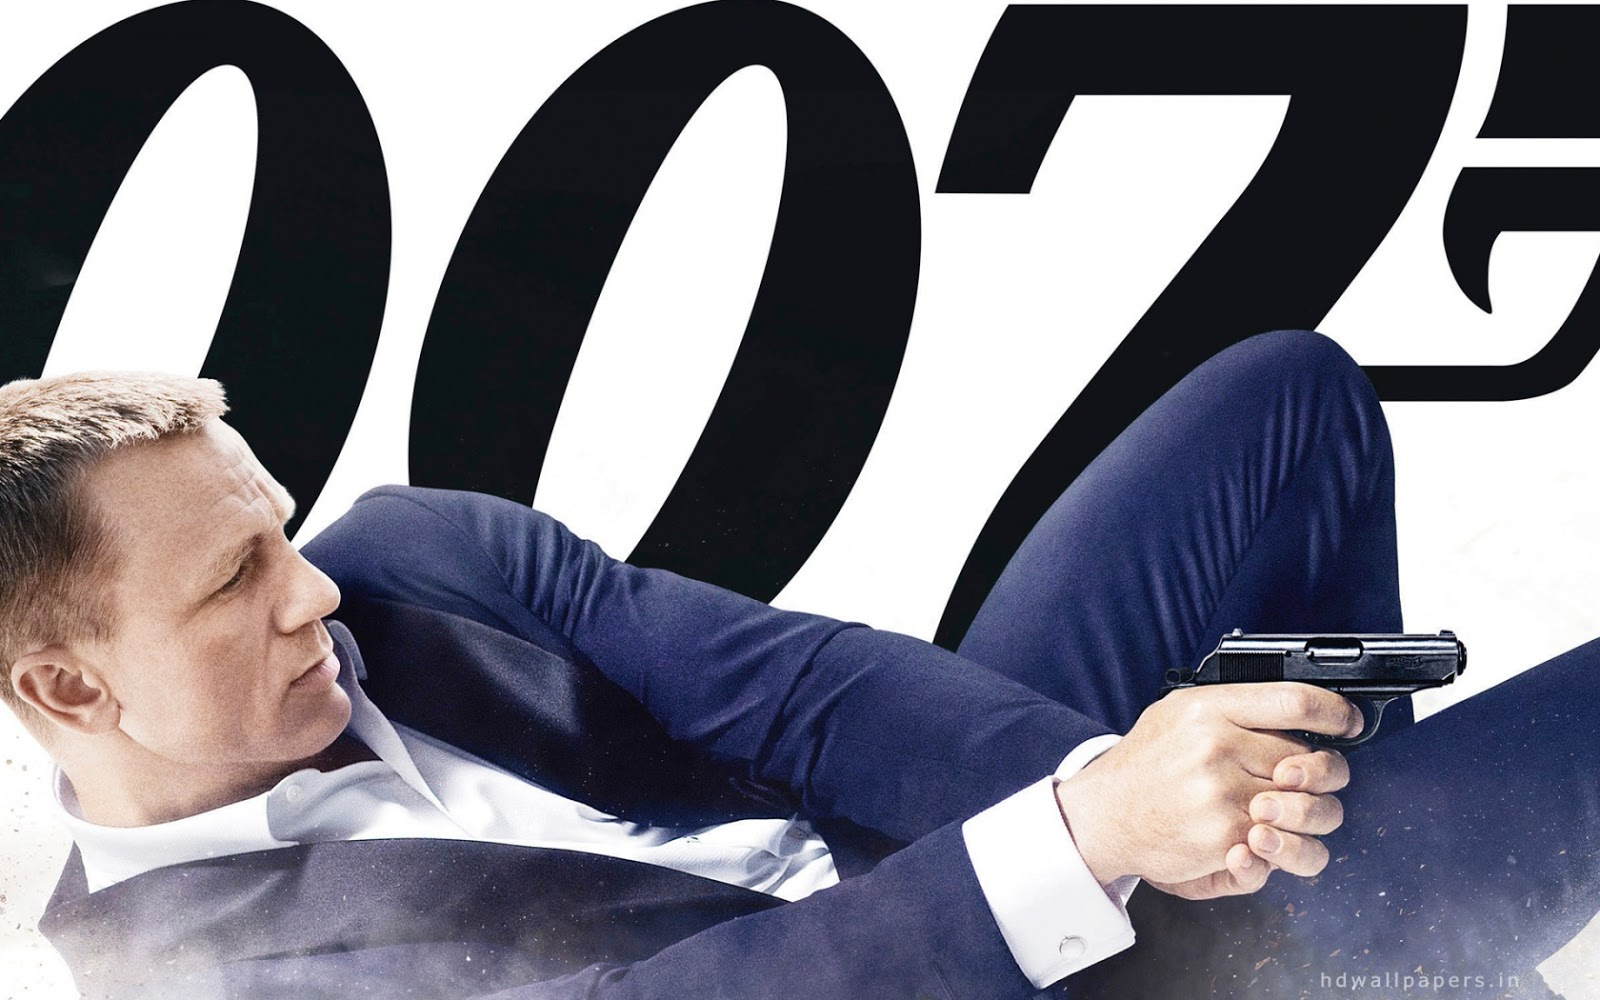 hd wallpapers for iphone 5 james bond 007 skyfall wallpapers free hd wallpapers for your. Black Bedroom Furniture Sets. Home Design Ideas